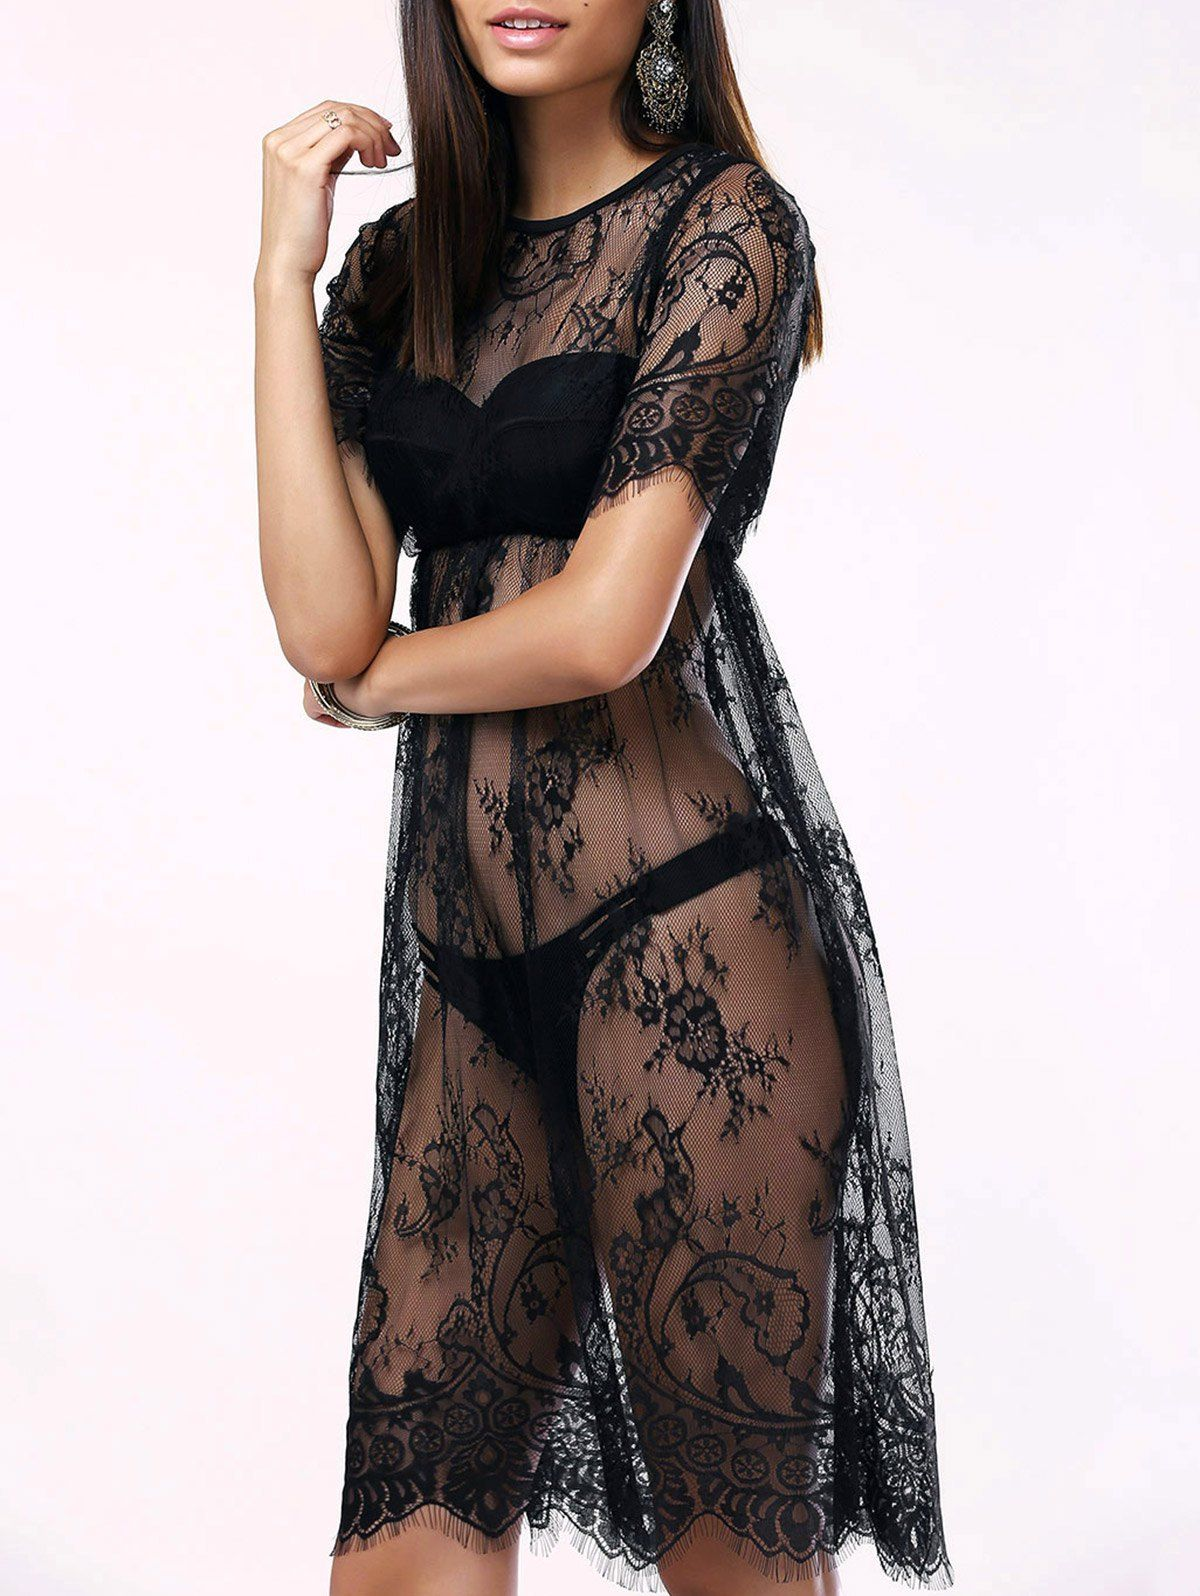 Cover-Ups & Kaftans   Black Alluring See-Through Lace Cover-Up For Women - Gamiss